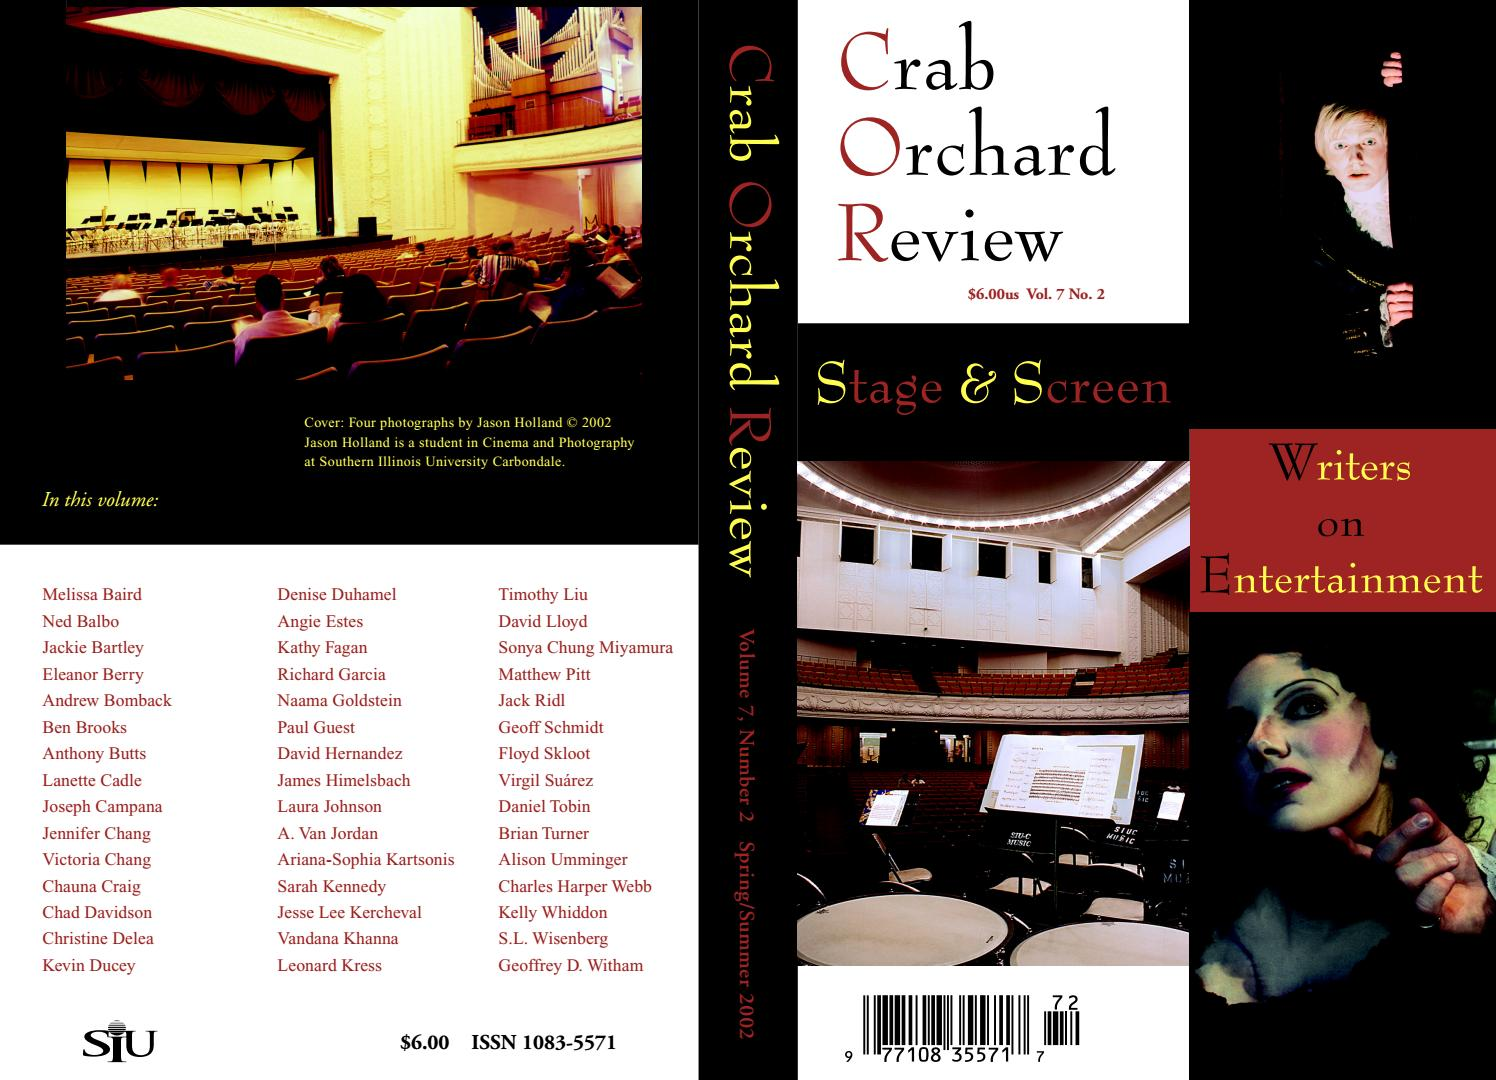 dd1b1bb5bb Crab Orchard Review Vol 7 No 2 S/S 2002 by Crab Orchard Review - issuu